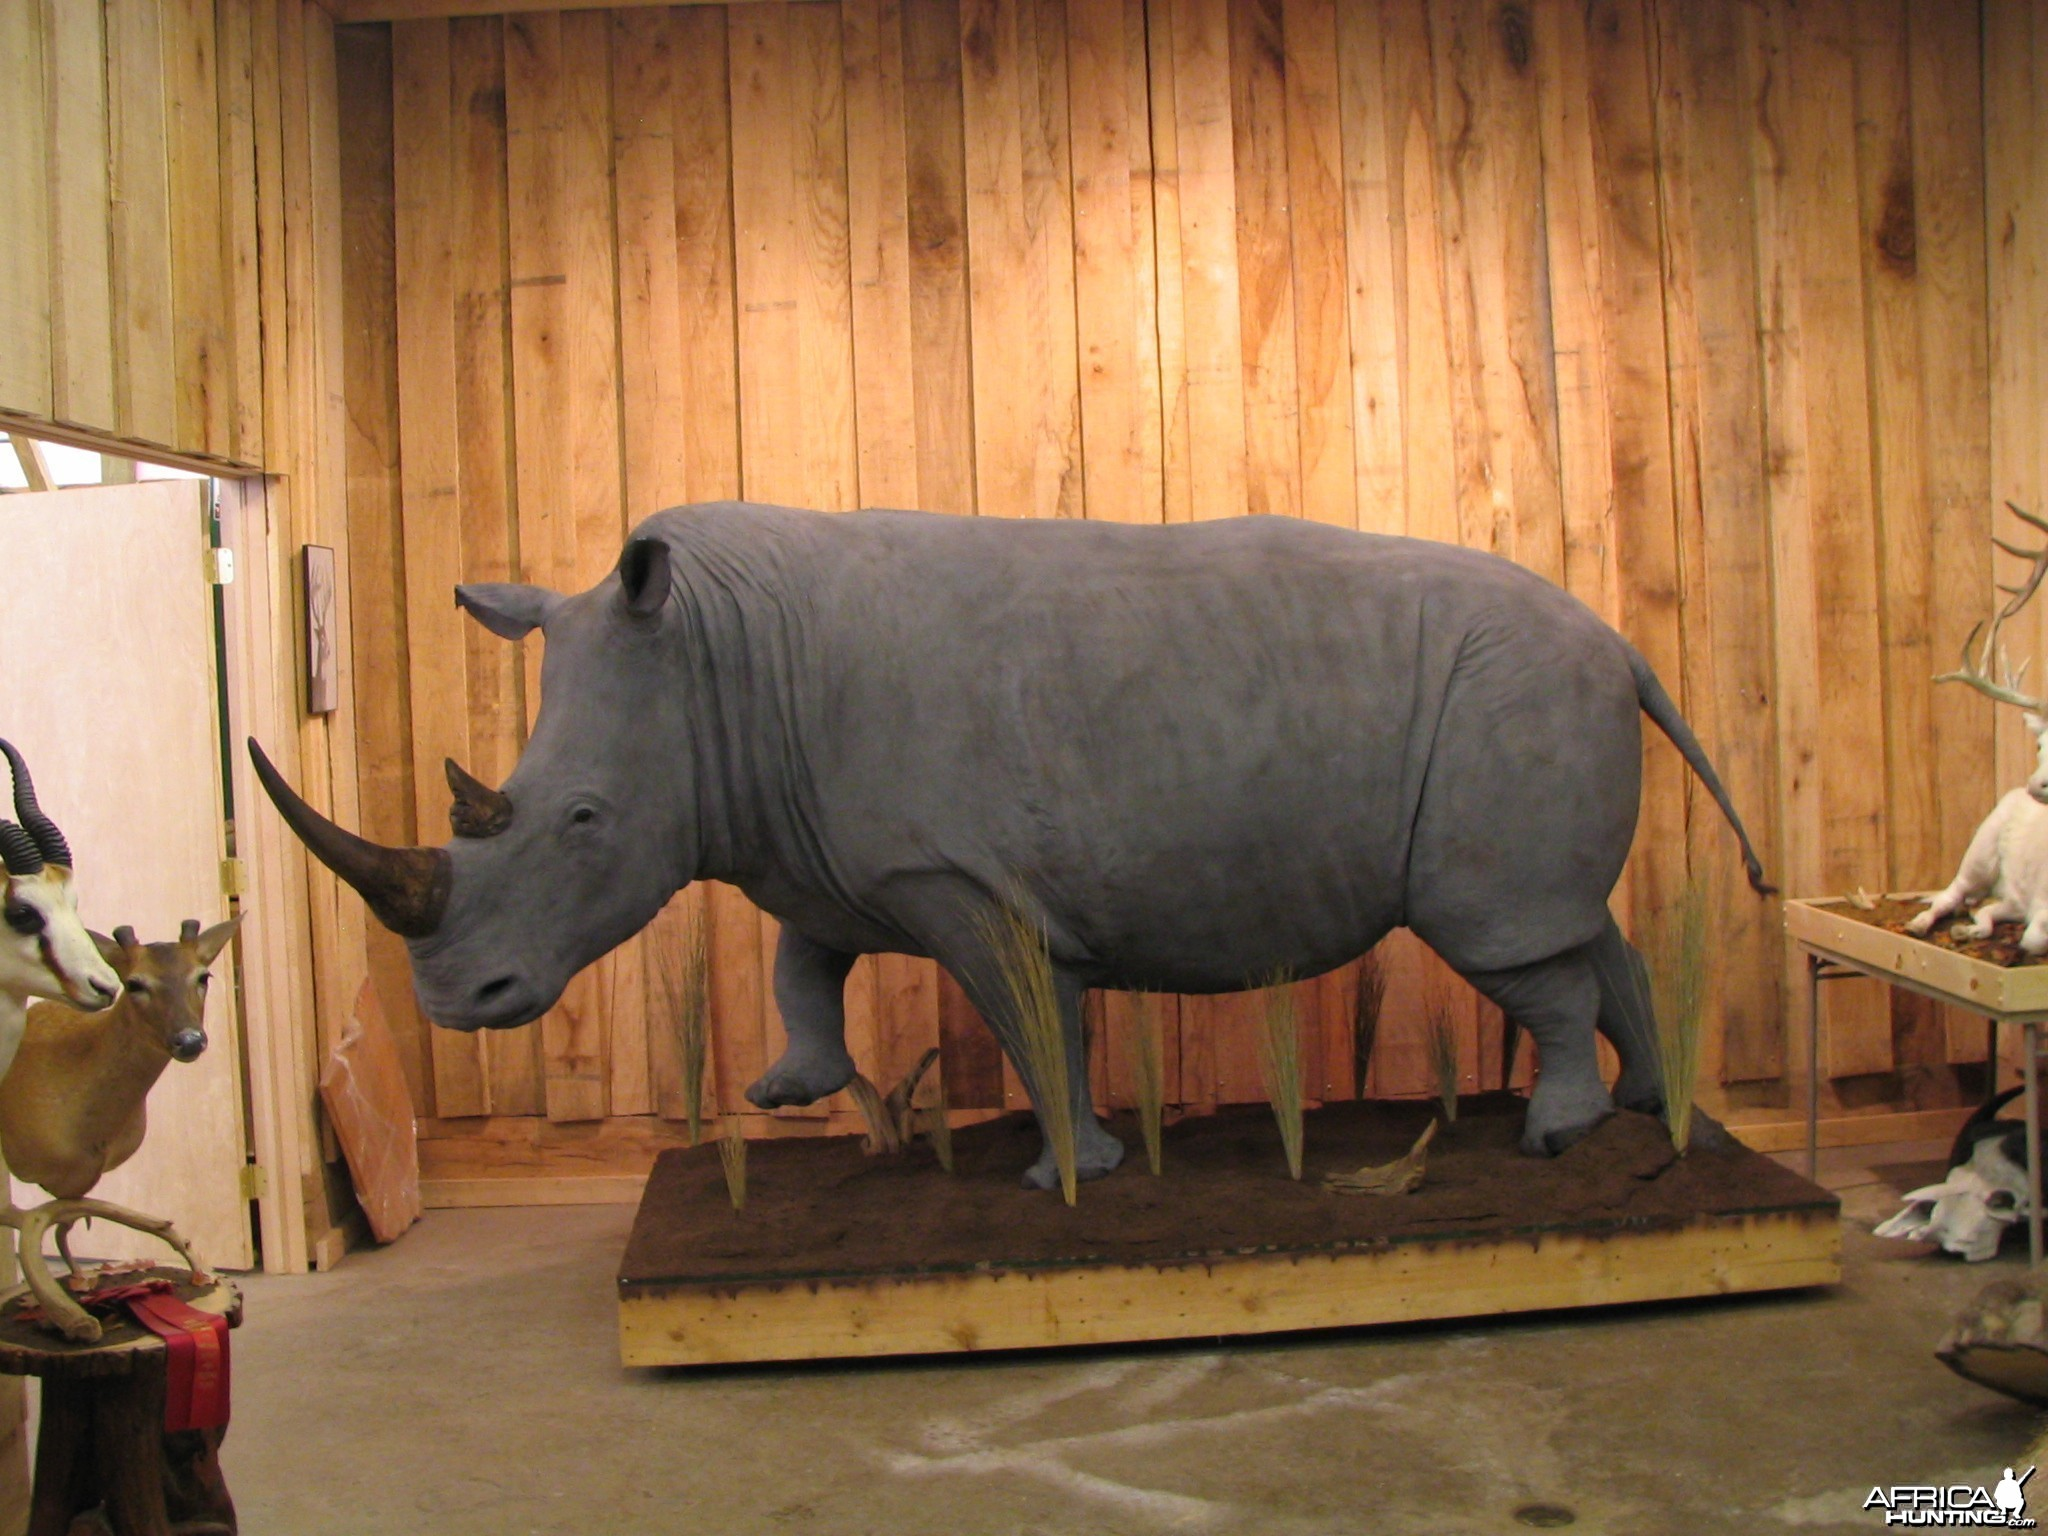 Rhino Taxidermy Mount